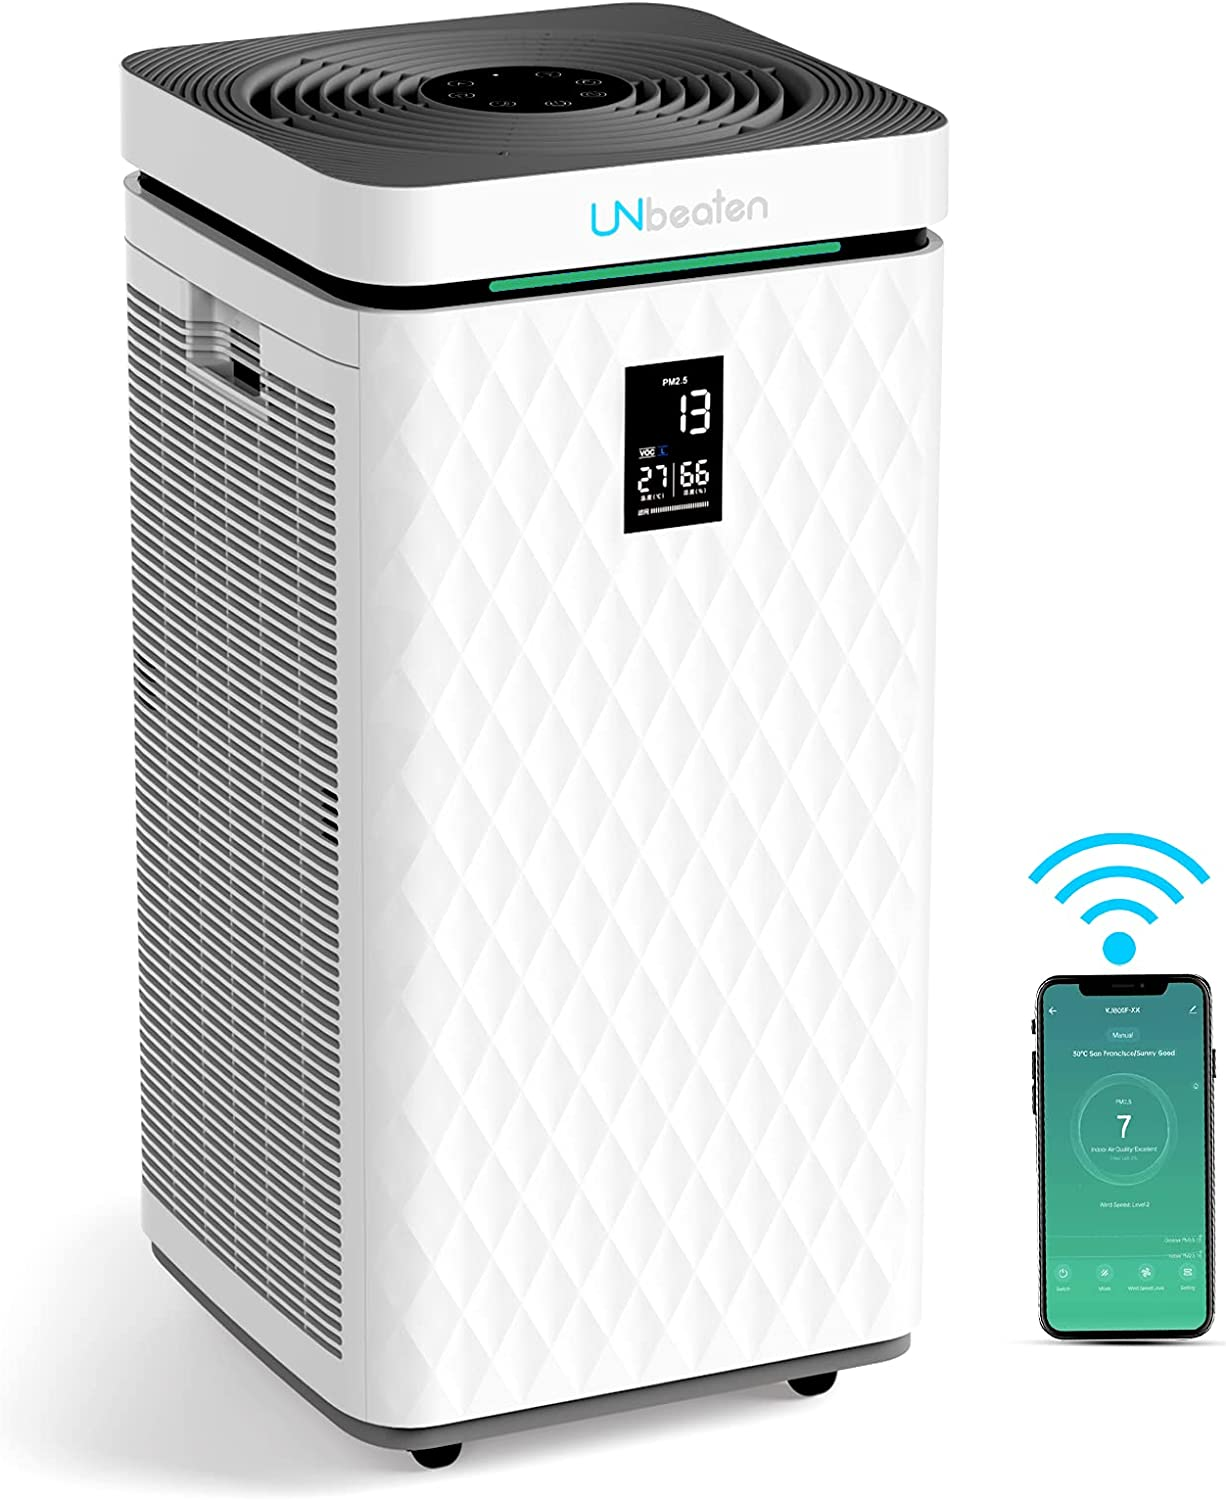 UNbeaten Smart WiFi 35% OFF Air Purifier for to Home Large Free Shipping New Room Up 1800f